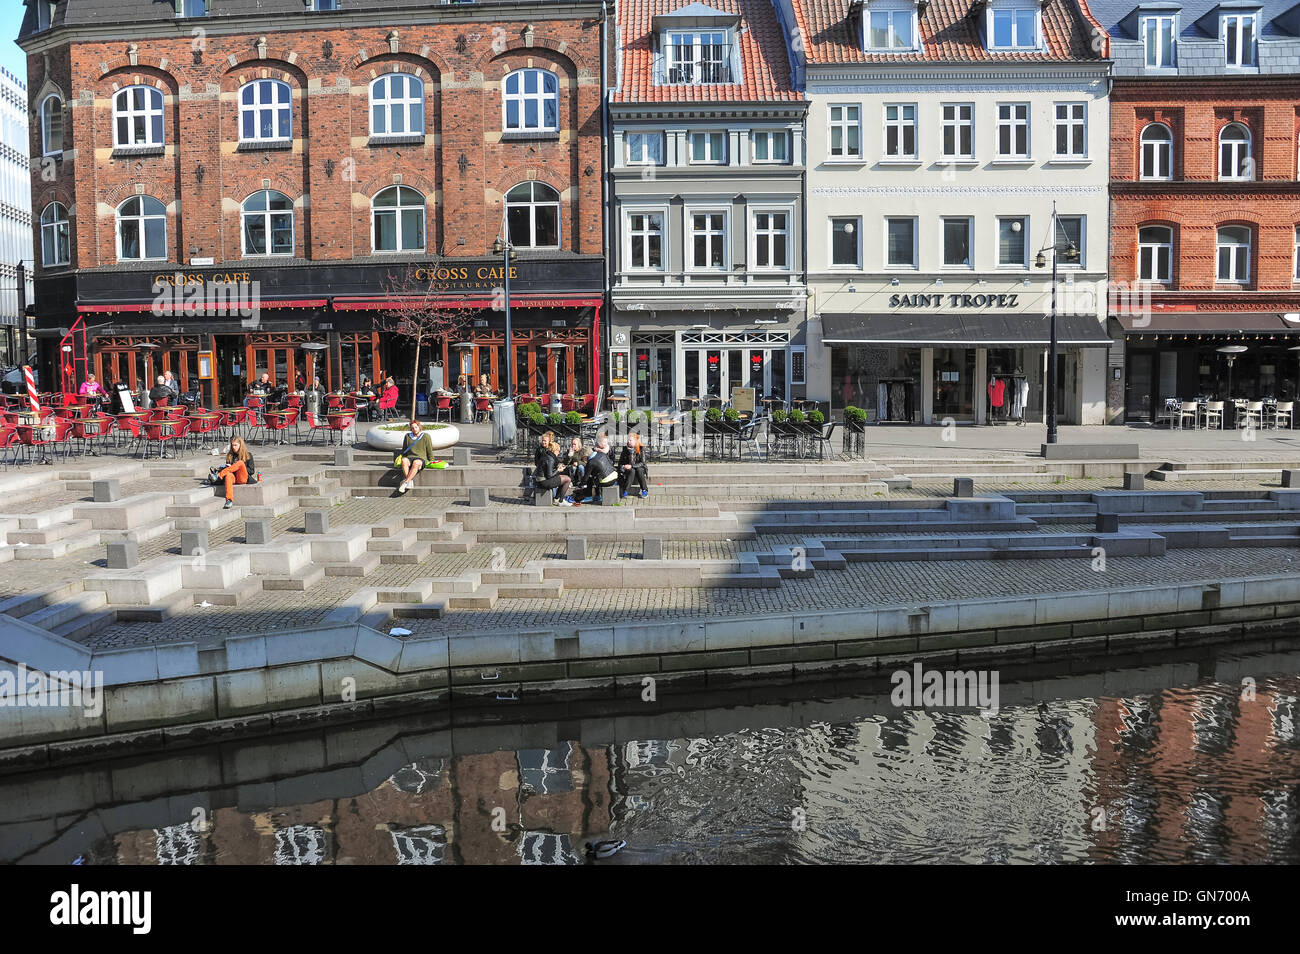 Square in City of Aarhus, Denmark - Stock Image